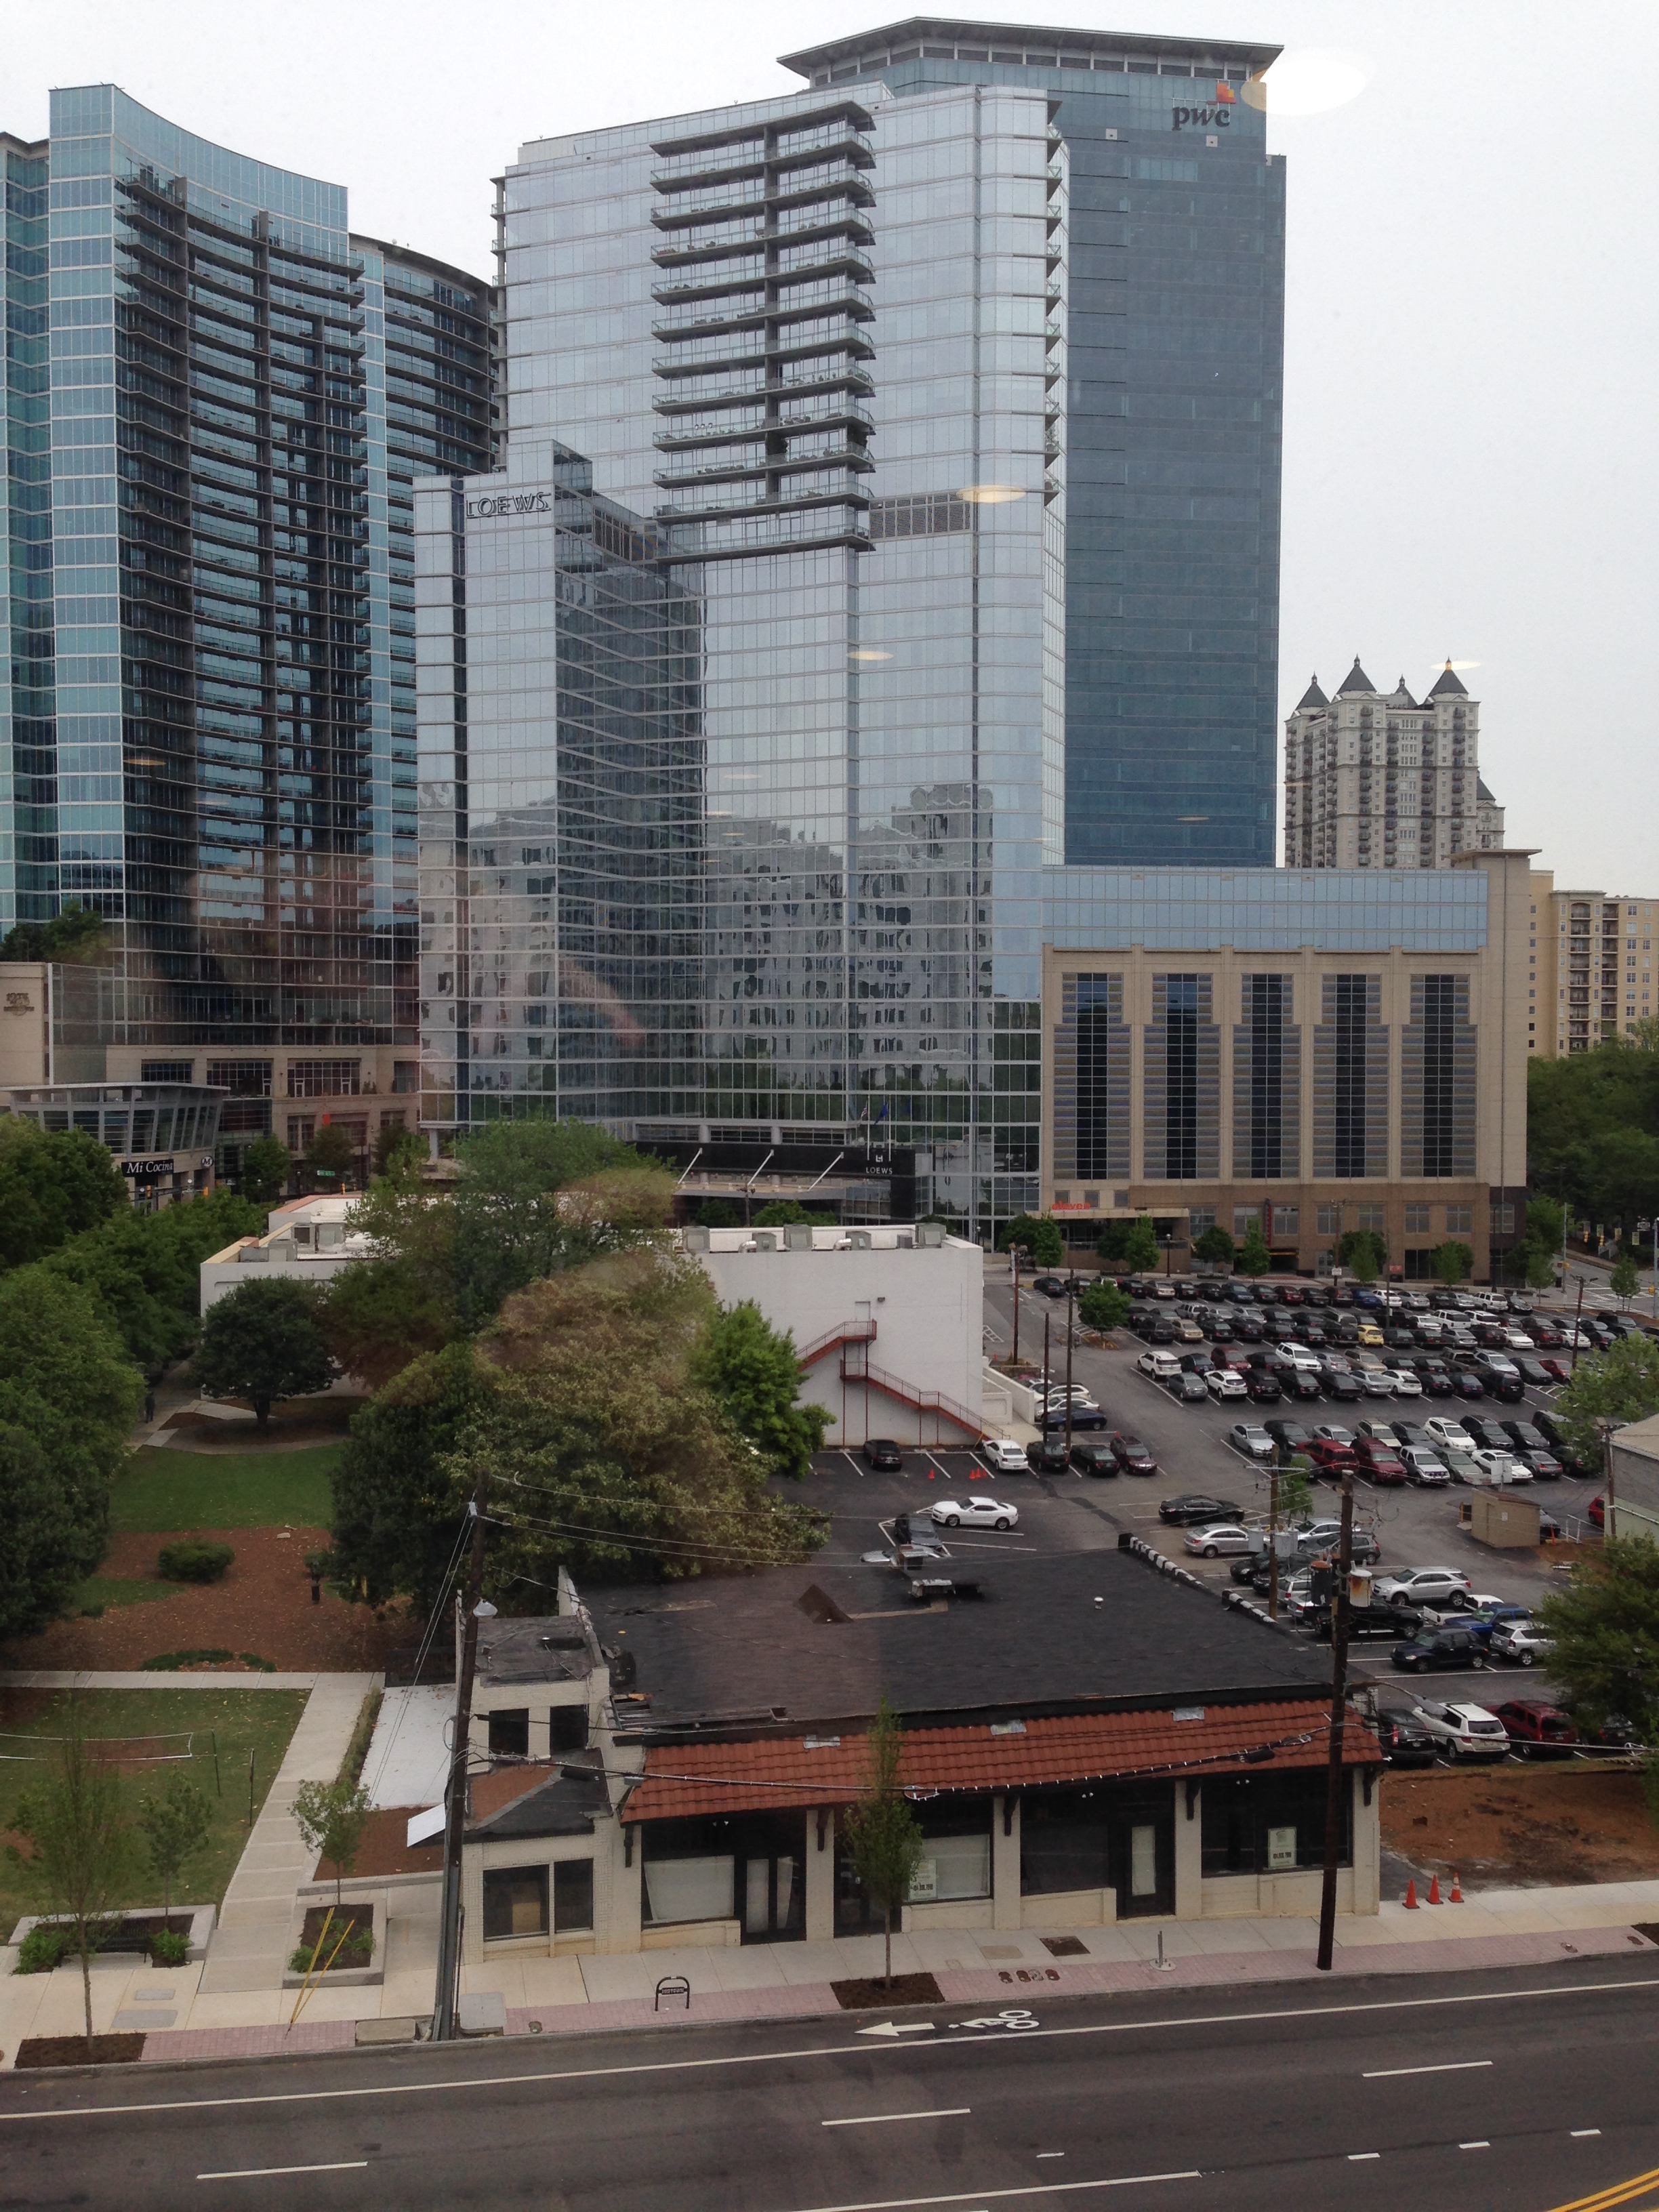 The transformation of Atlanta's Midtown includes infill Transit Oriented Development that will replace this surface parking lot.